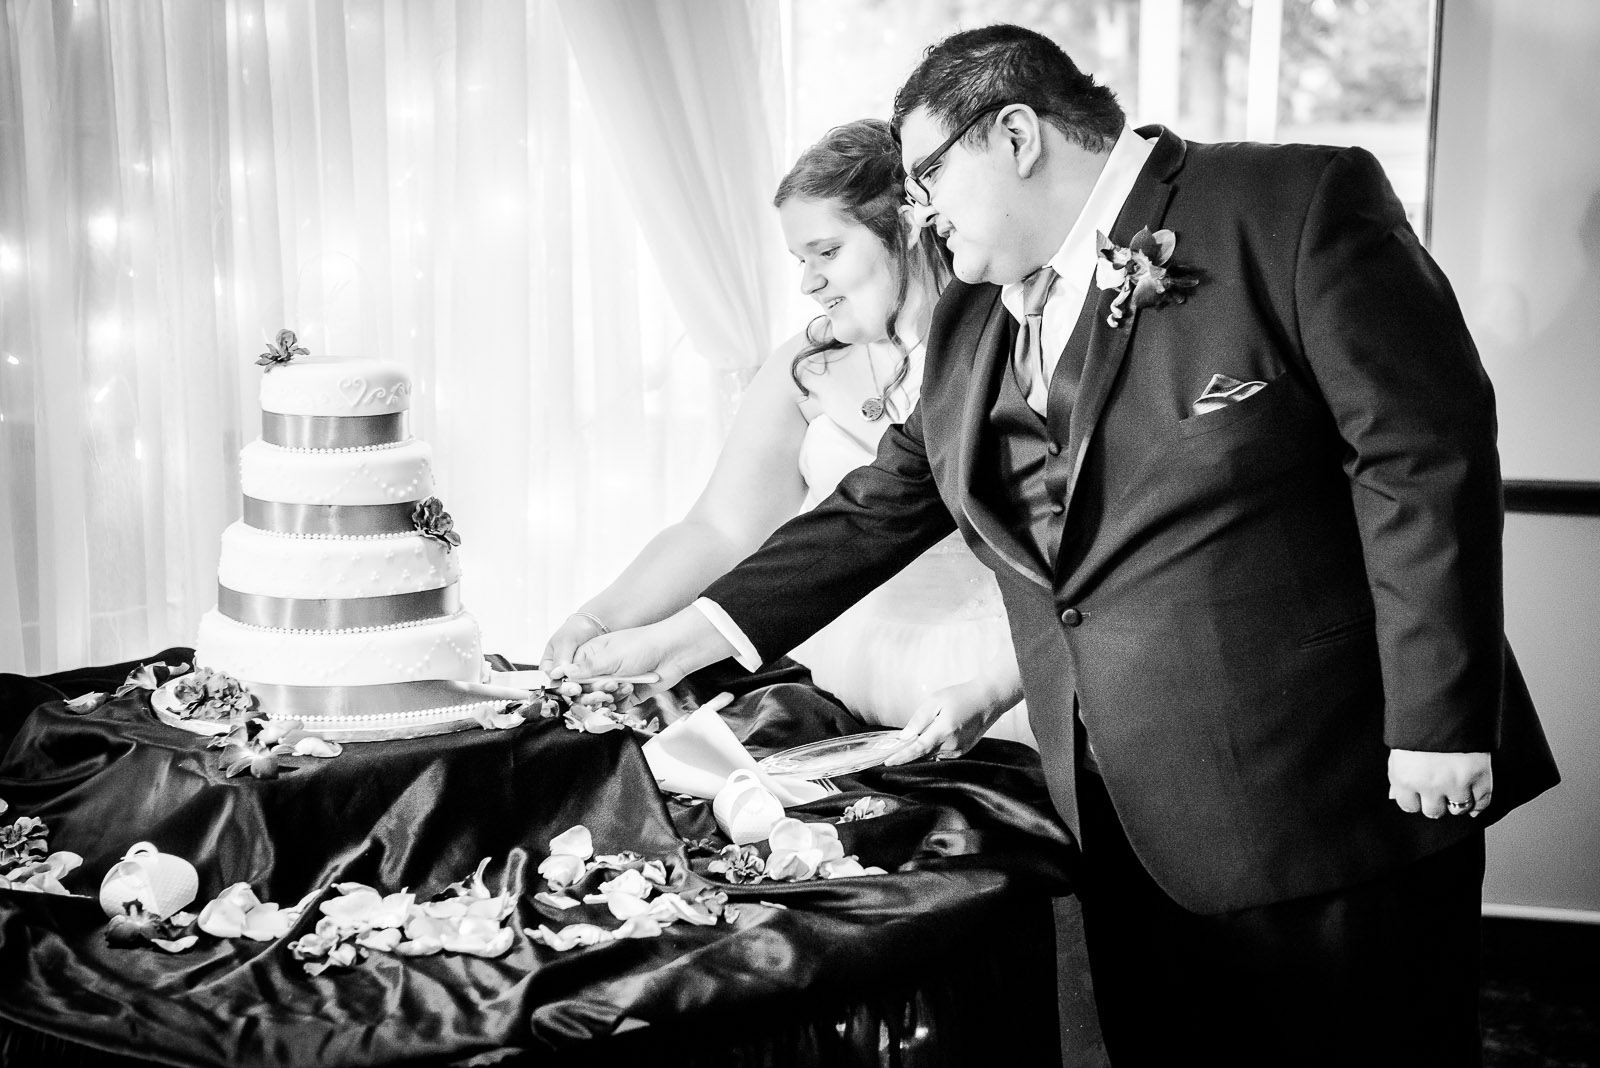 Eric_and_Christy_Photography_Blog_Shelby_Dony_Wedding-40